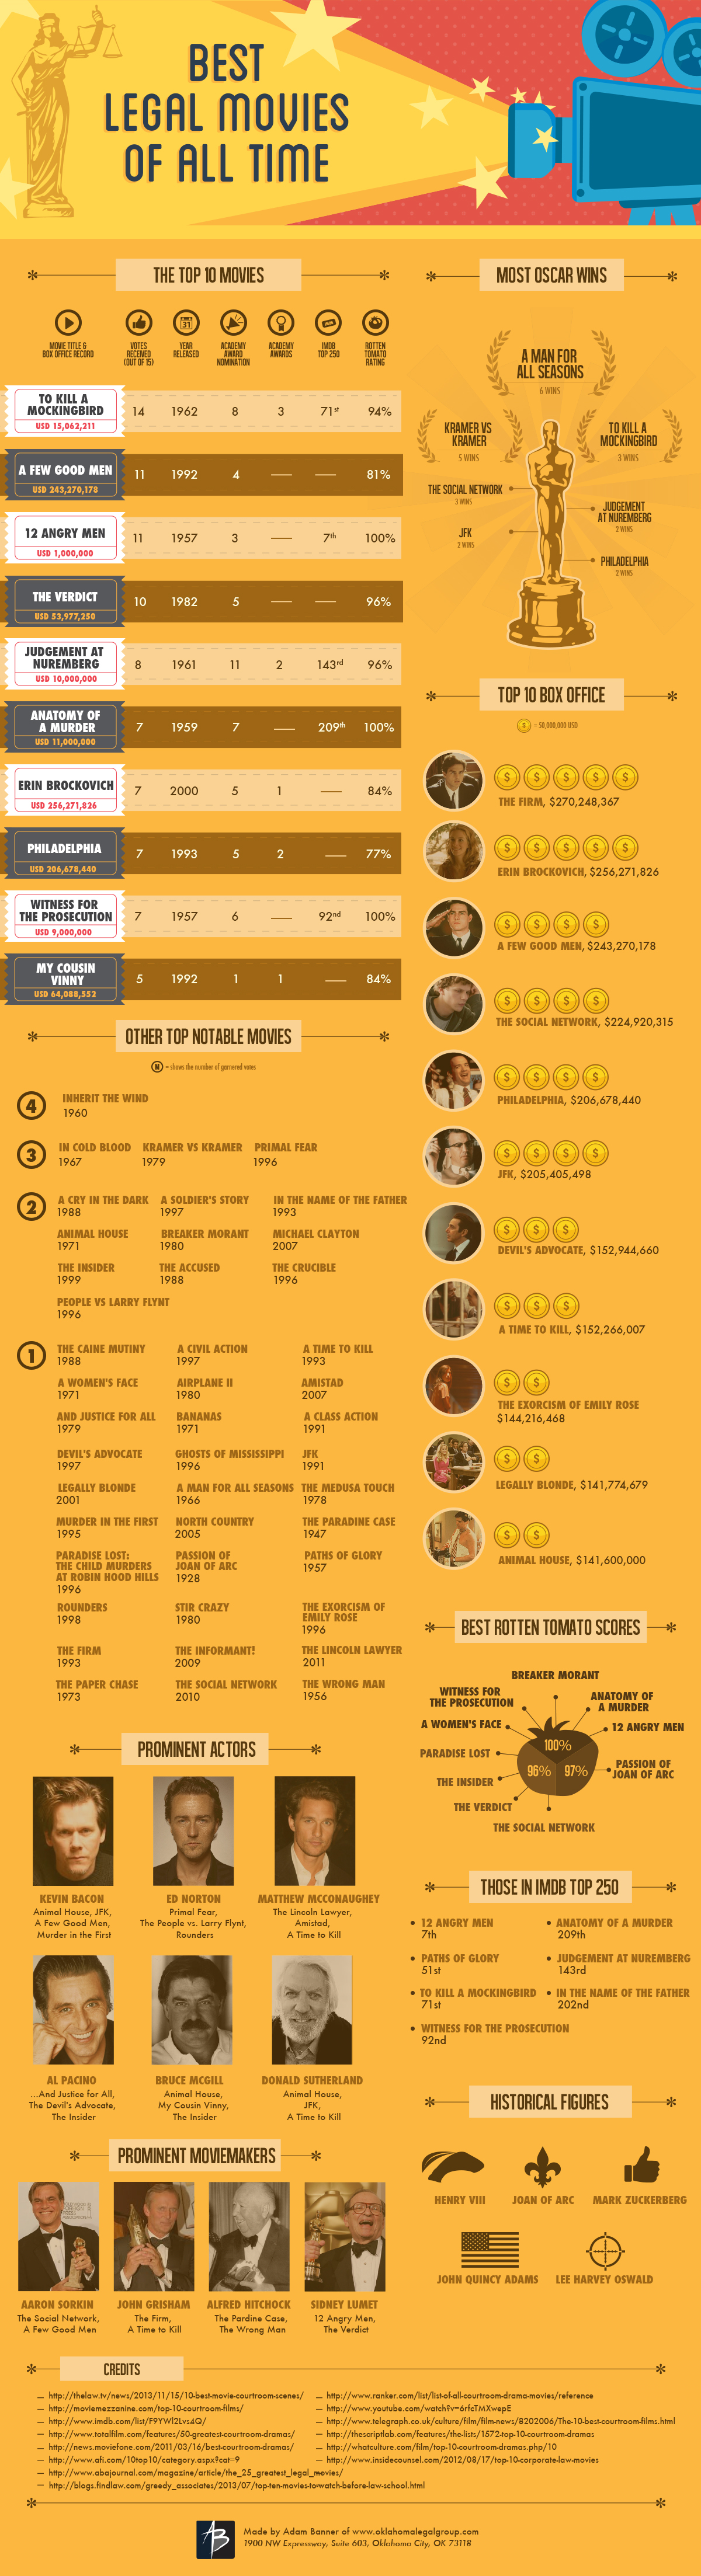 Best Legal Movies All Time Infographic